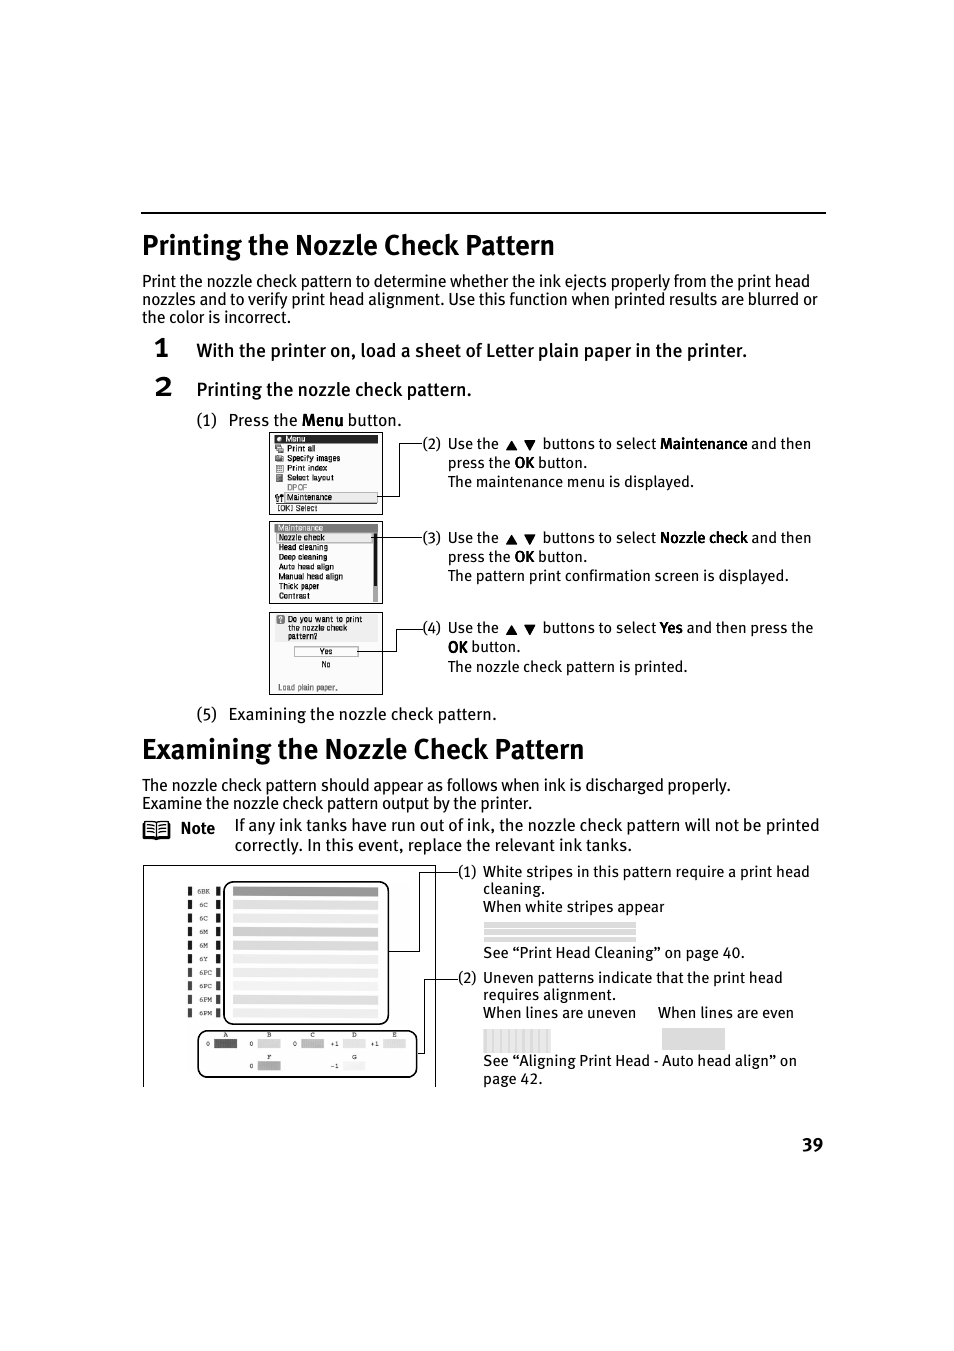 Printing the nozzle check pattern, Examining the nozzle